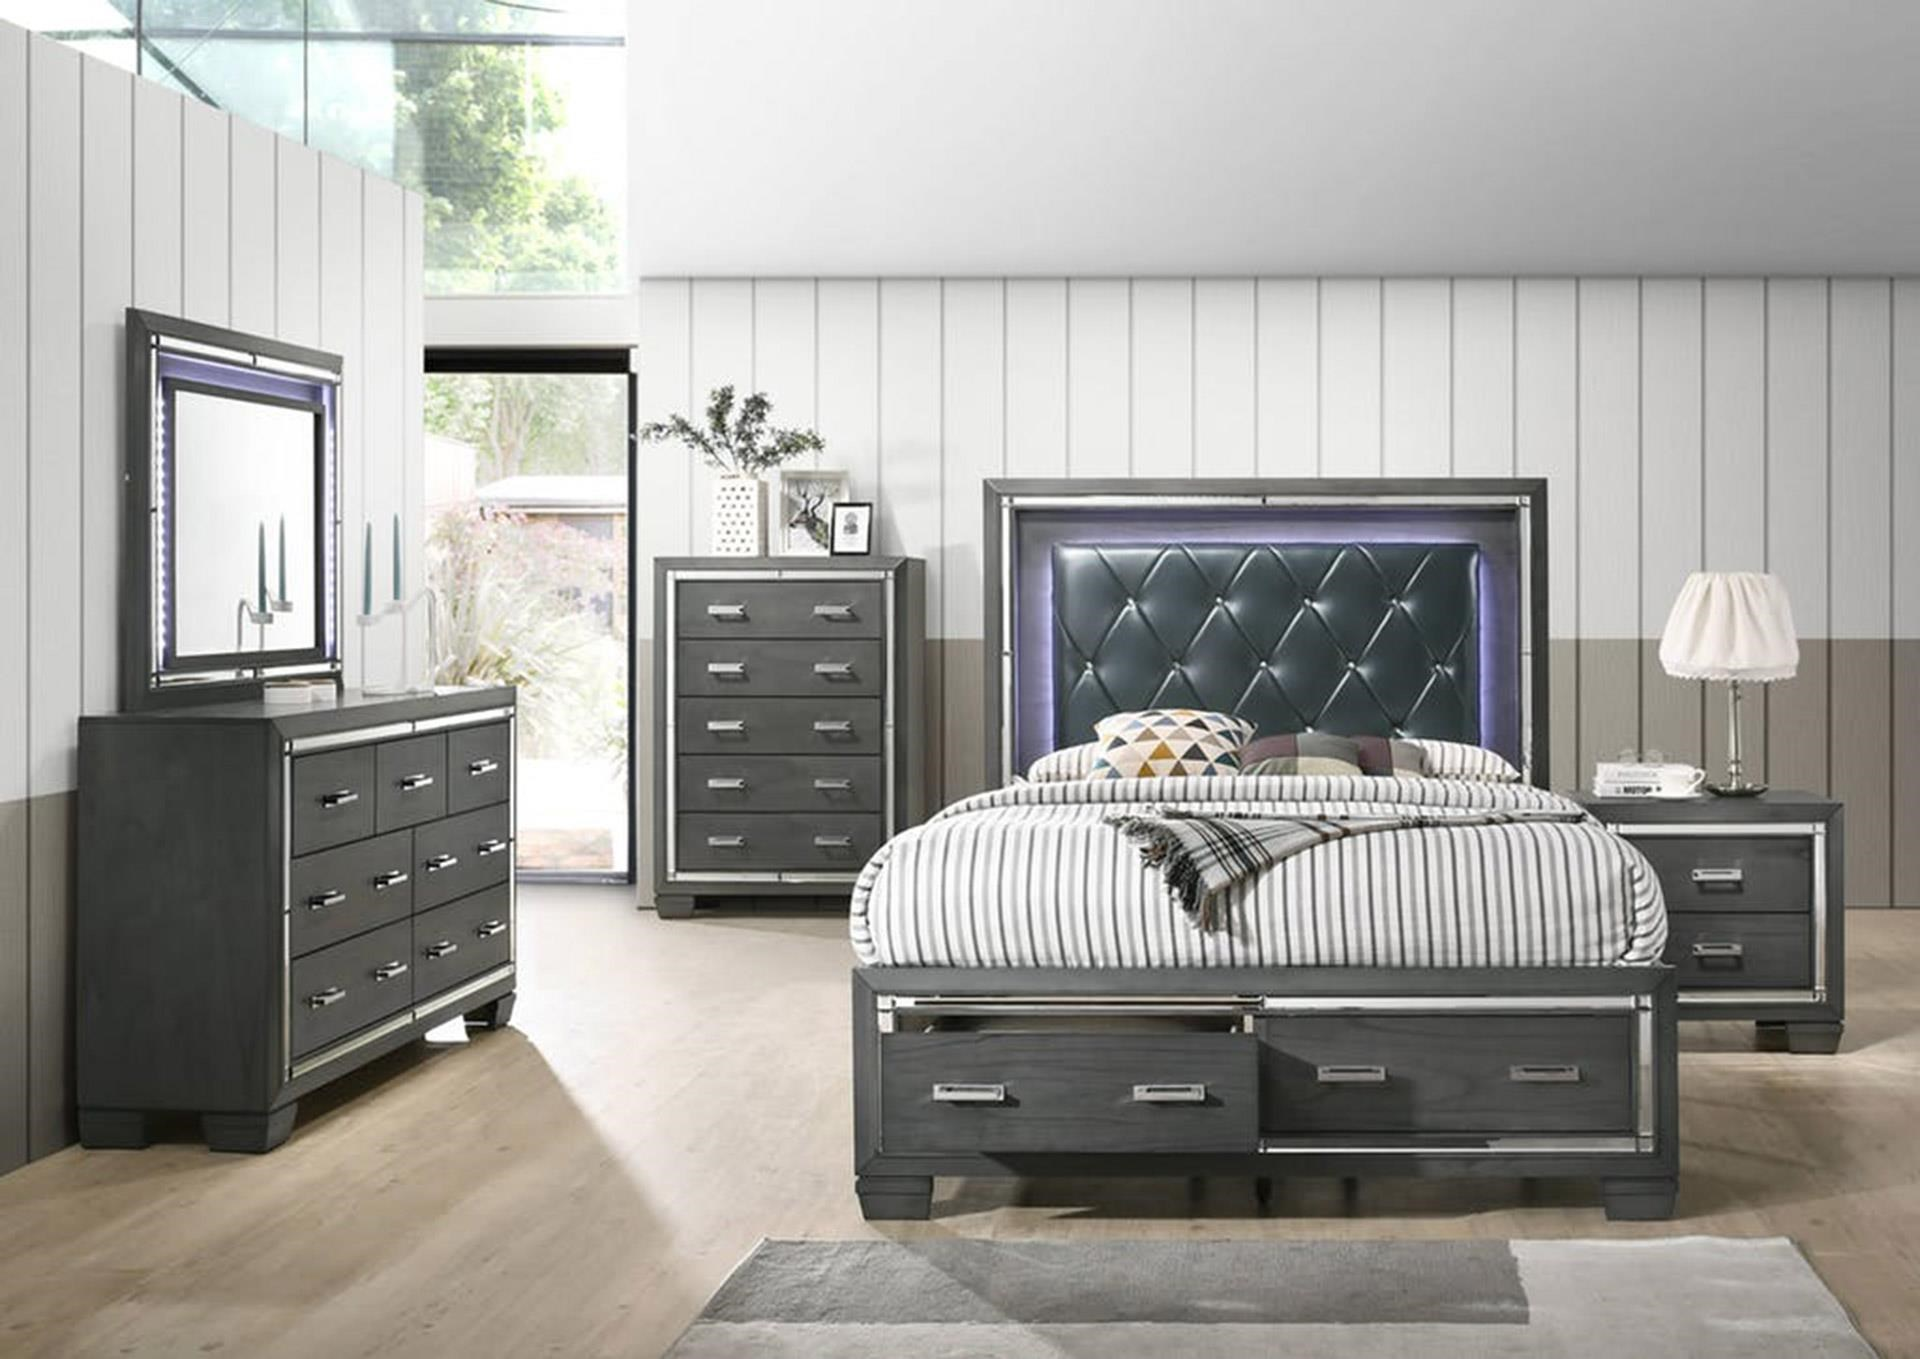 Queen Bed with LED Headboard & Storage Footboard, Dresser, LED Mirror, and Nightstand